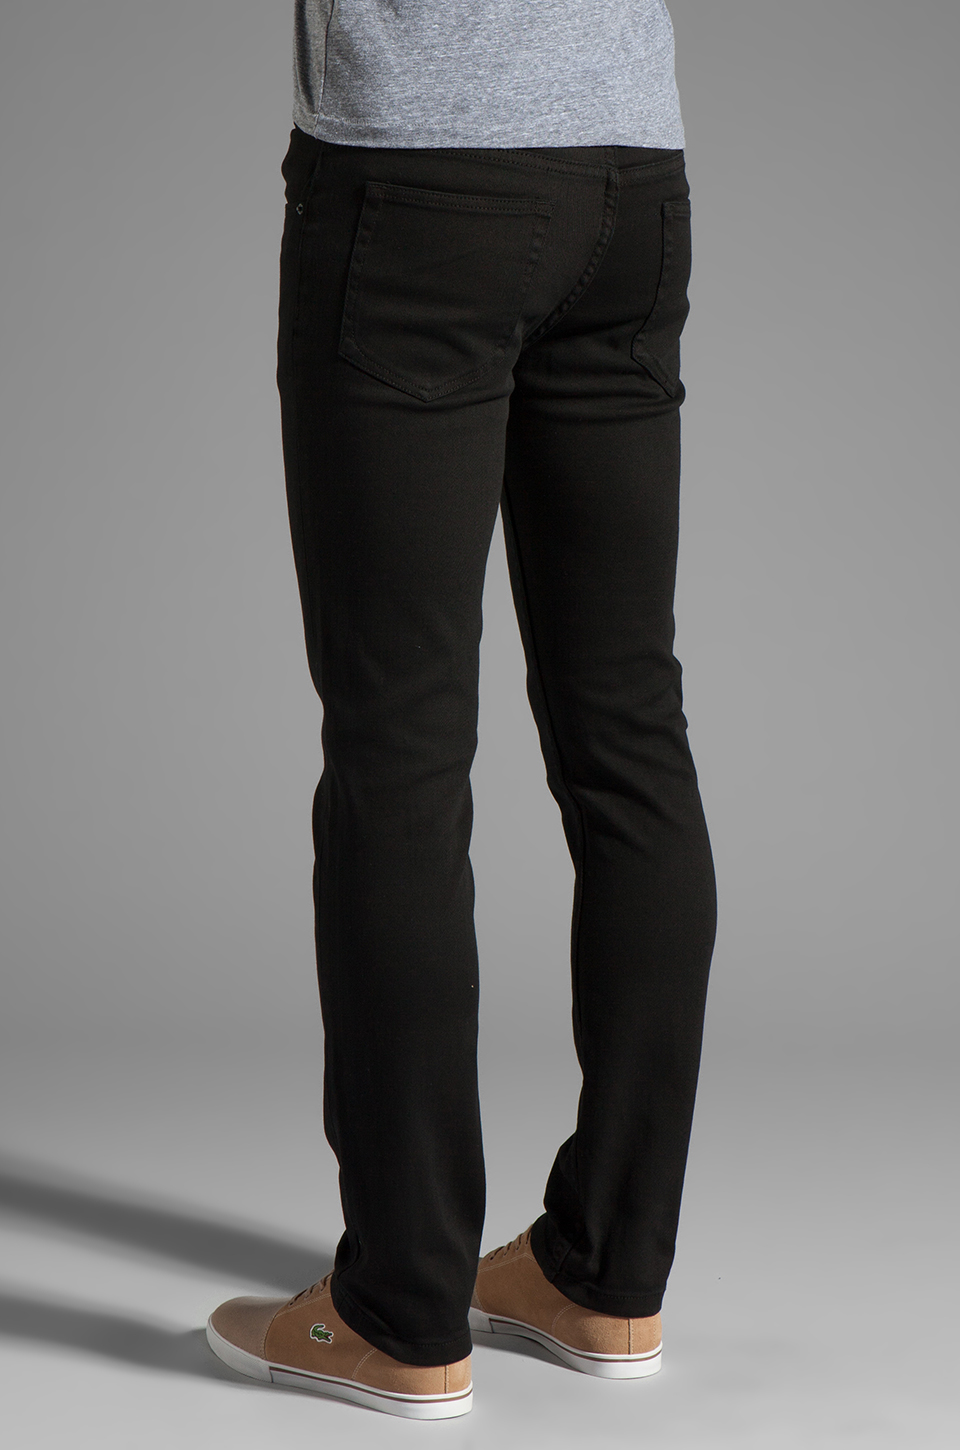 Obey Juvee II Denim in Black